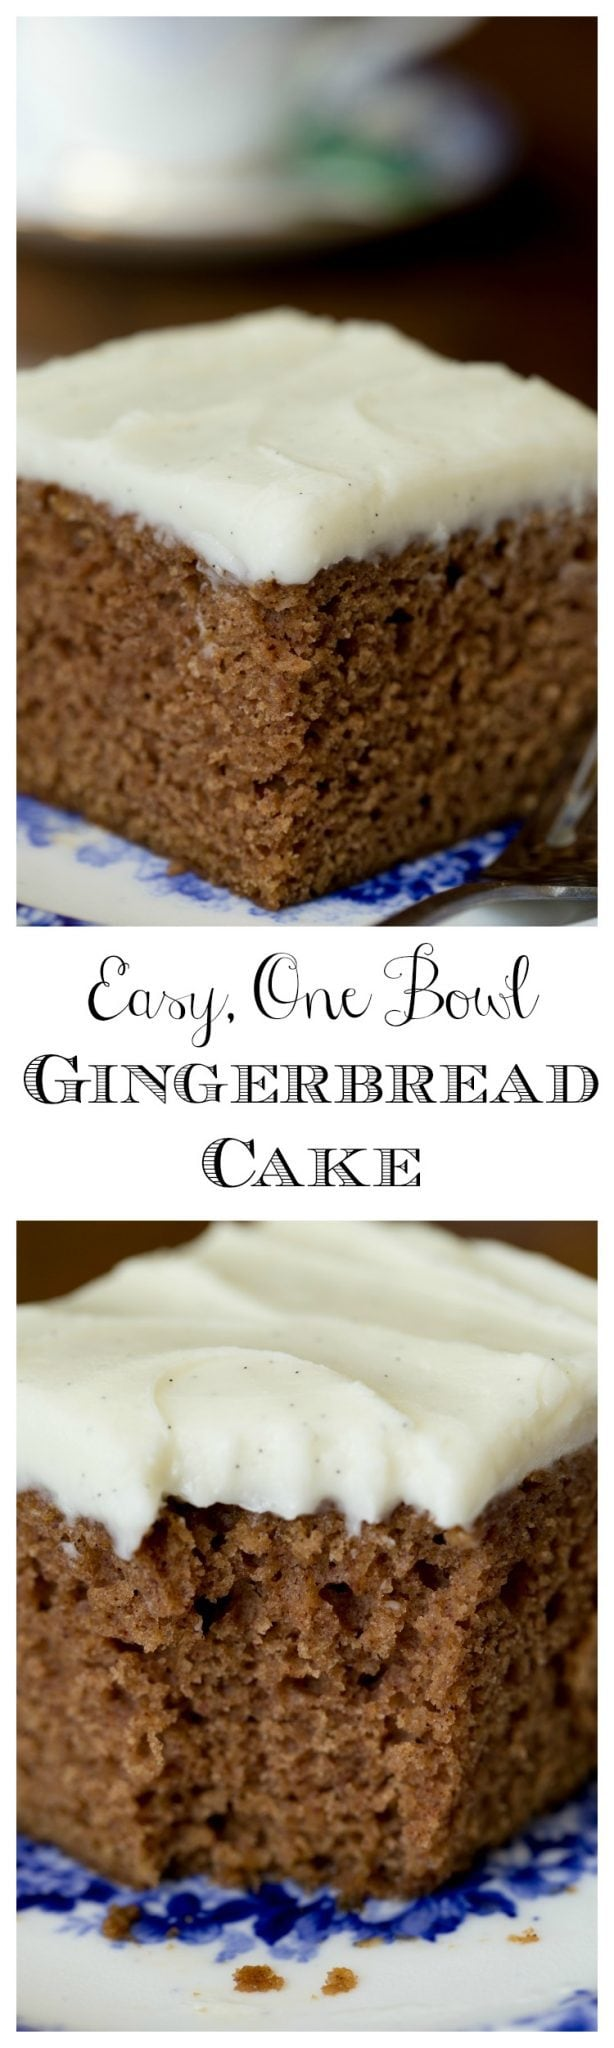 Easy, One Bowl Gingerbread Cake - this might just be the easiest, moistest, most delicious cake you've ever made!Easy, One Bowl Gingerbread Cake - this might just be the easiest, moistest, most delicious cake you've ever made!